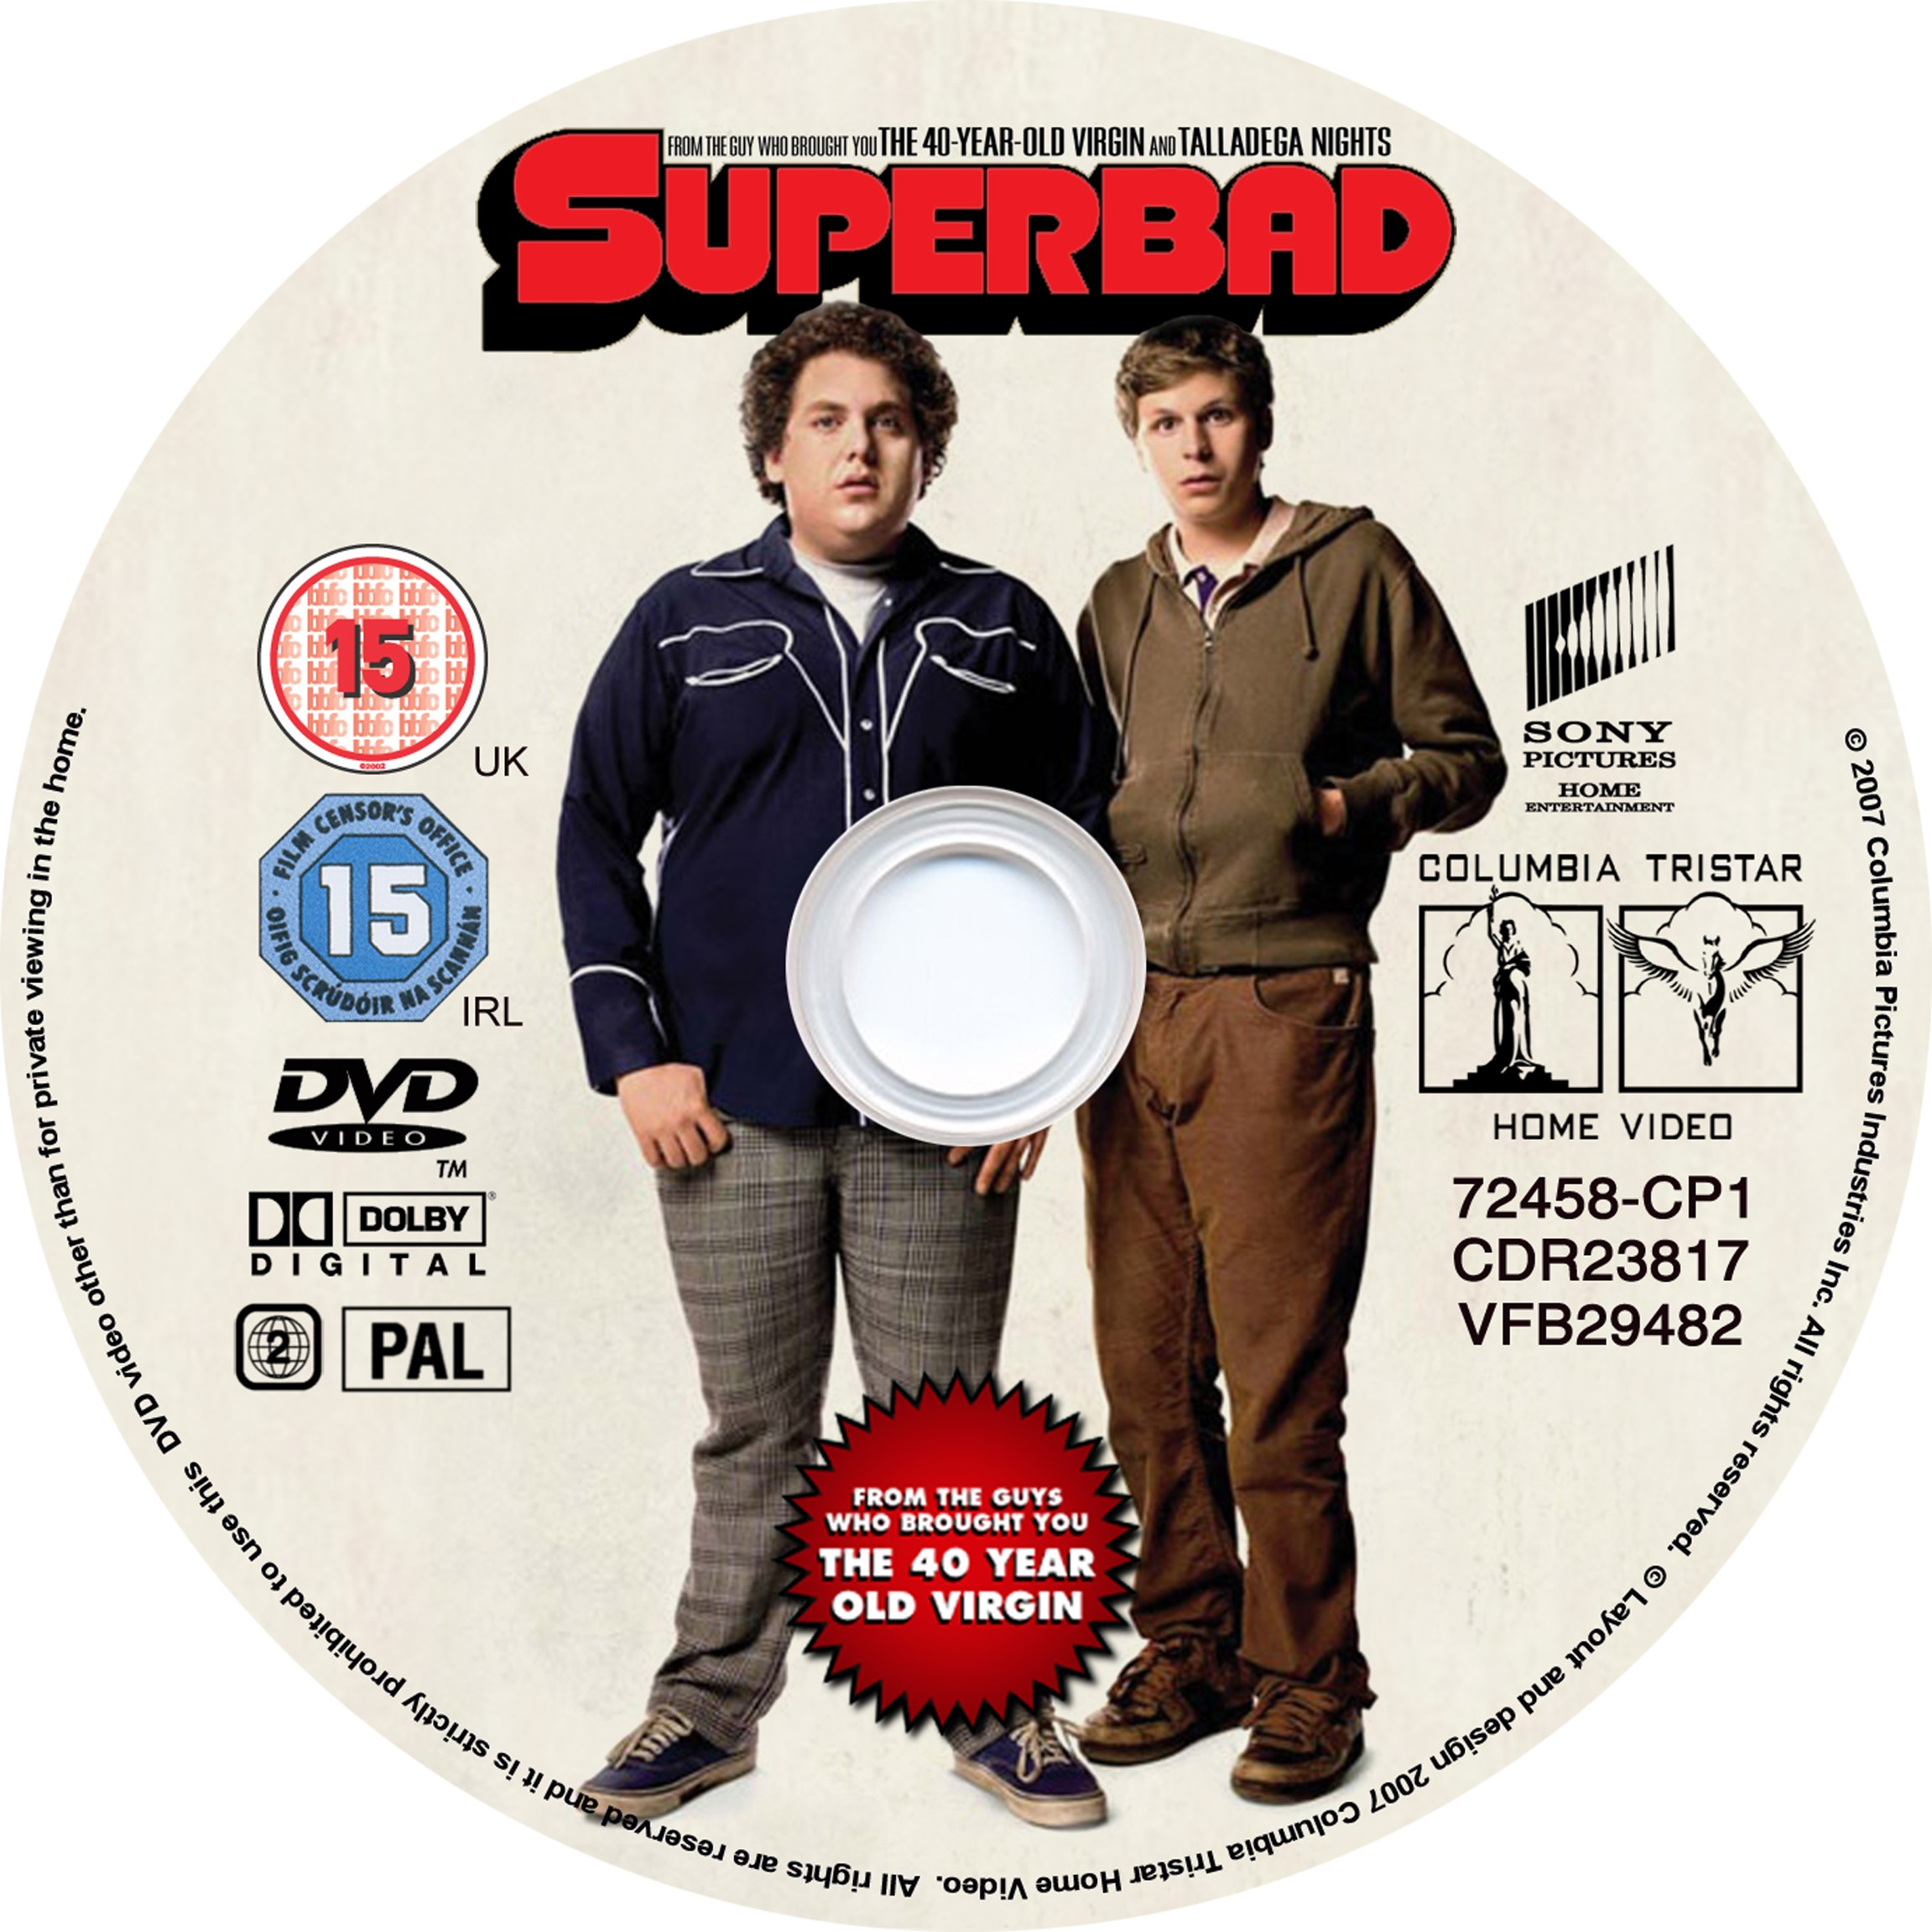 Covers Box Sk Superbad 2007 High Quality Dvd Blueray Movie